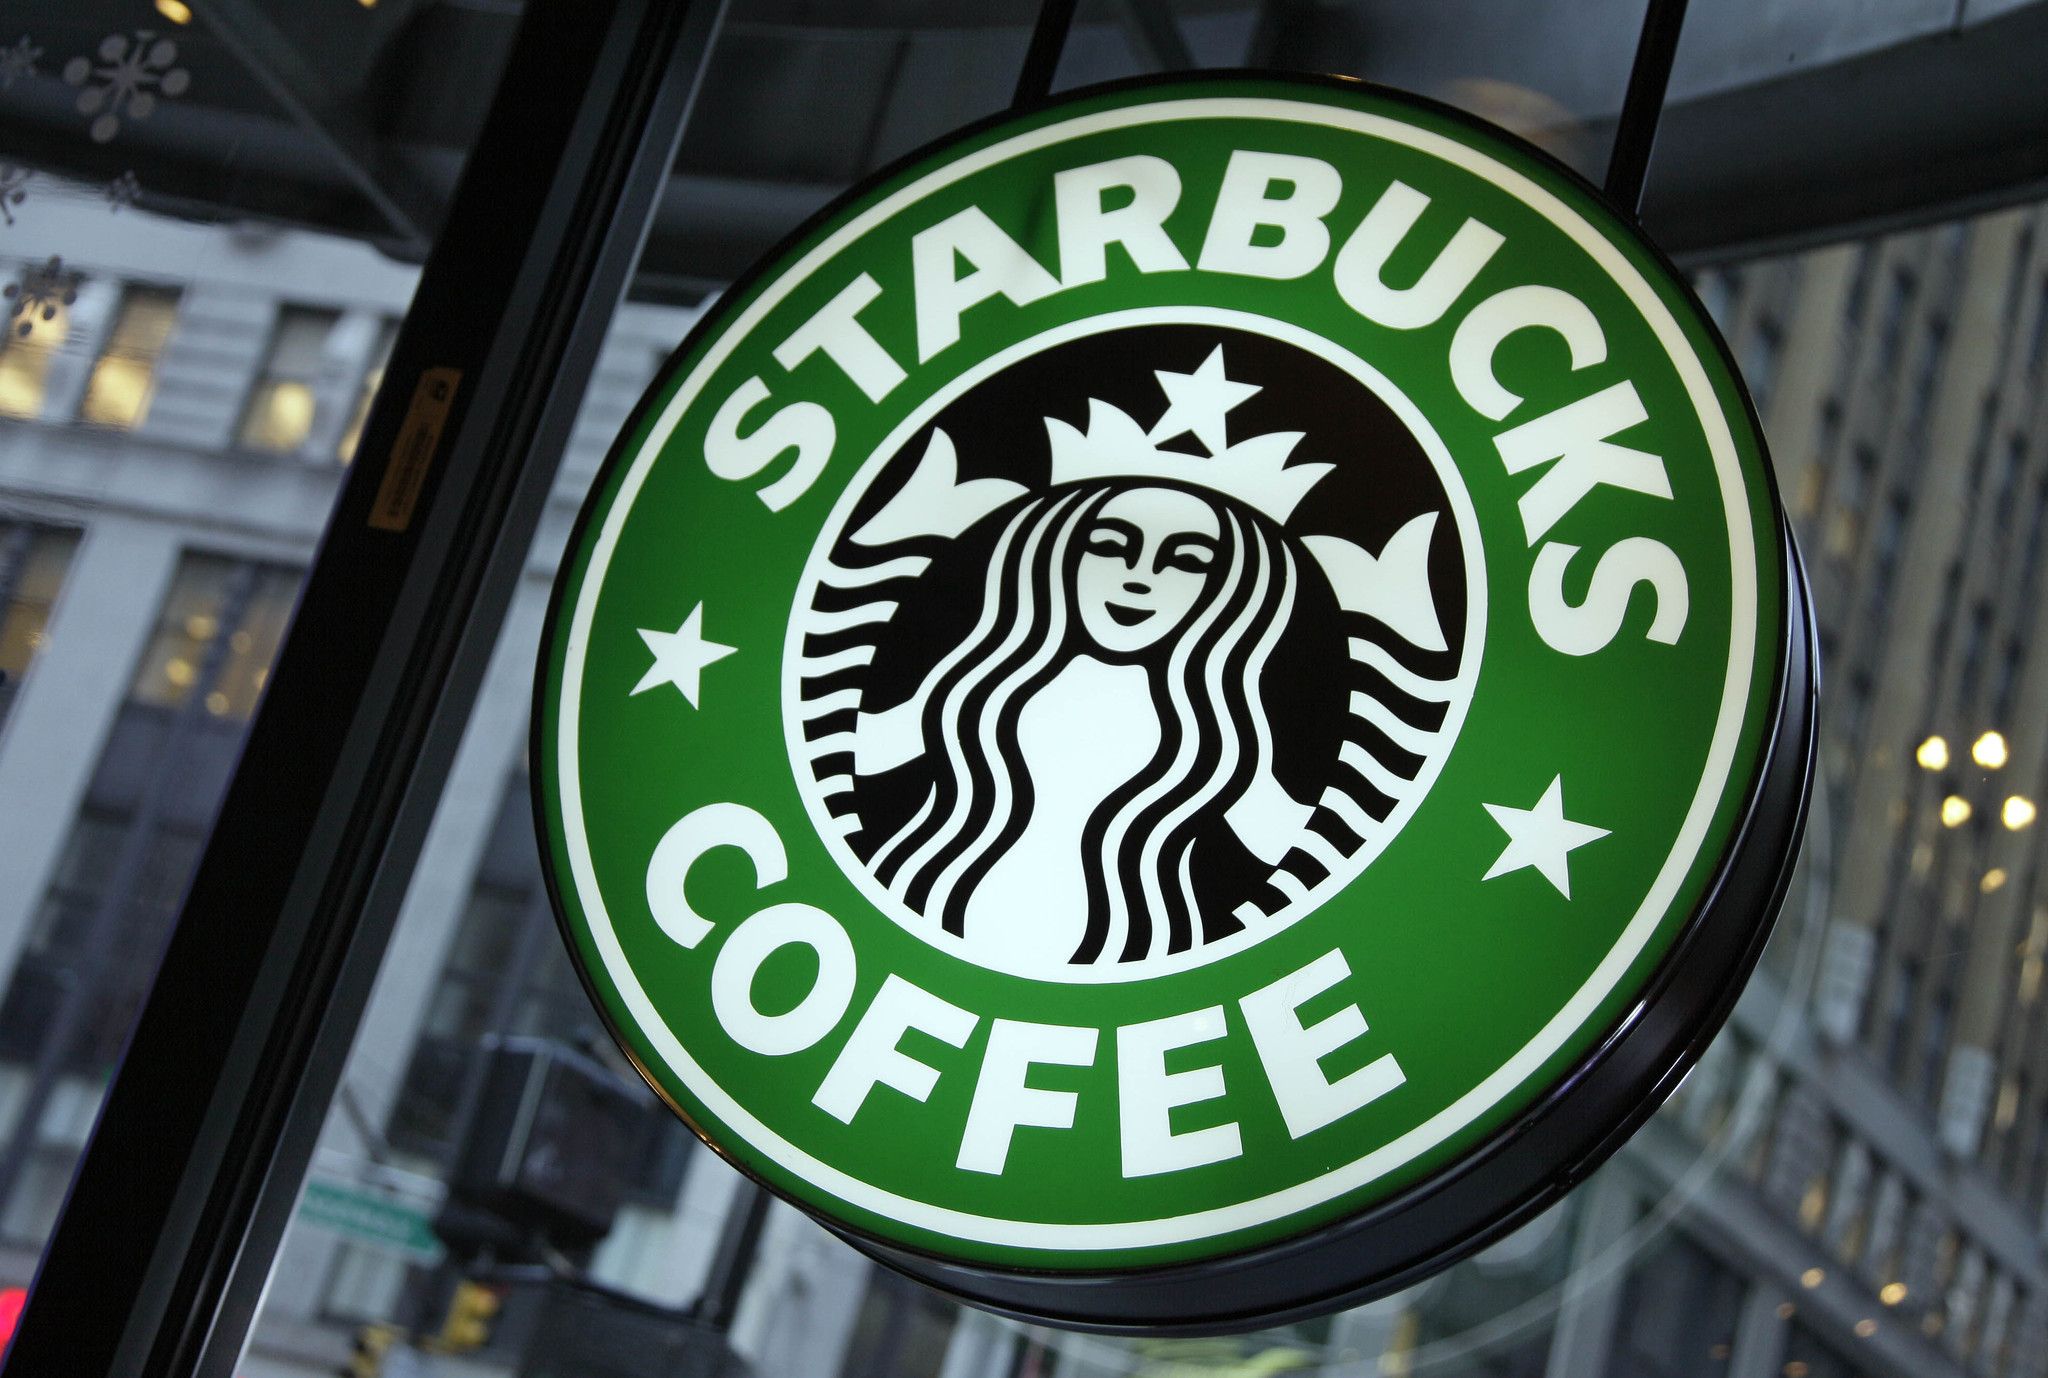 Starbucks ceo says it 39 s ready to enter italy after 35 for Starbucks italie